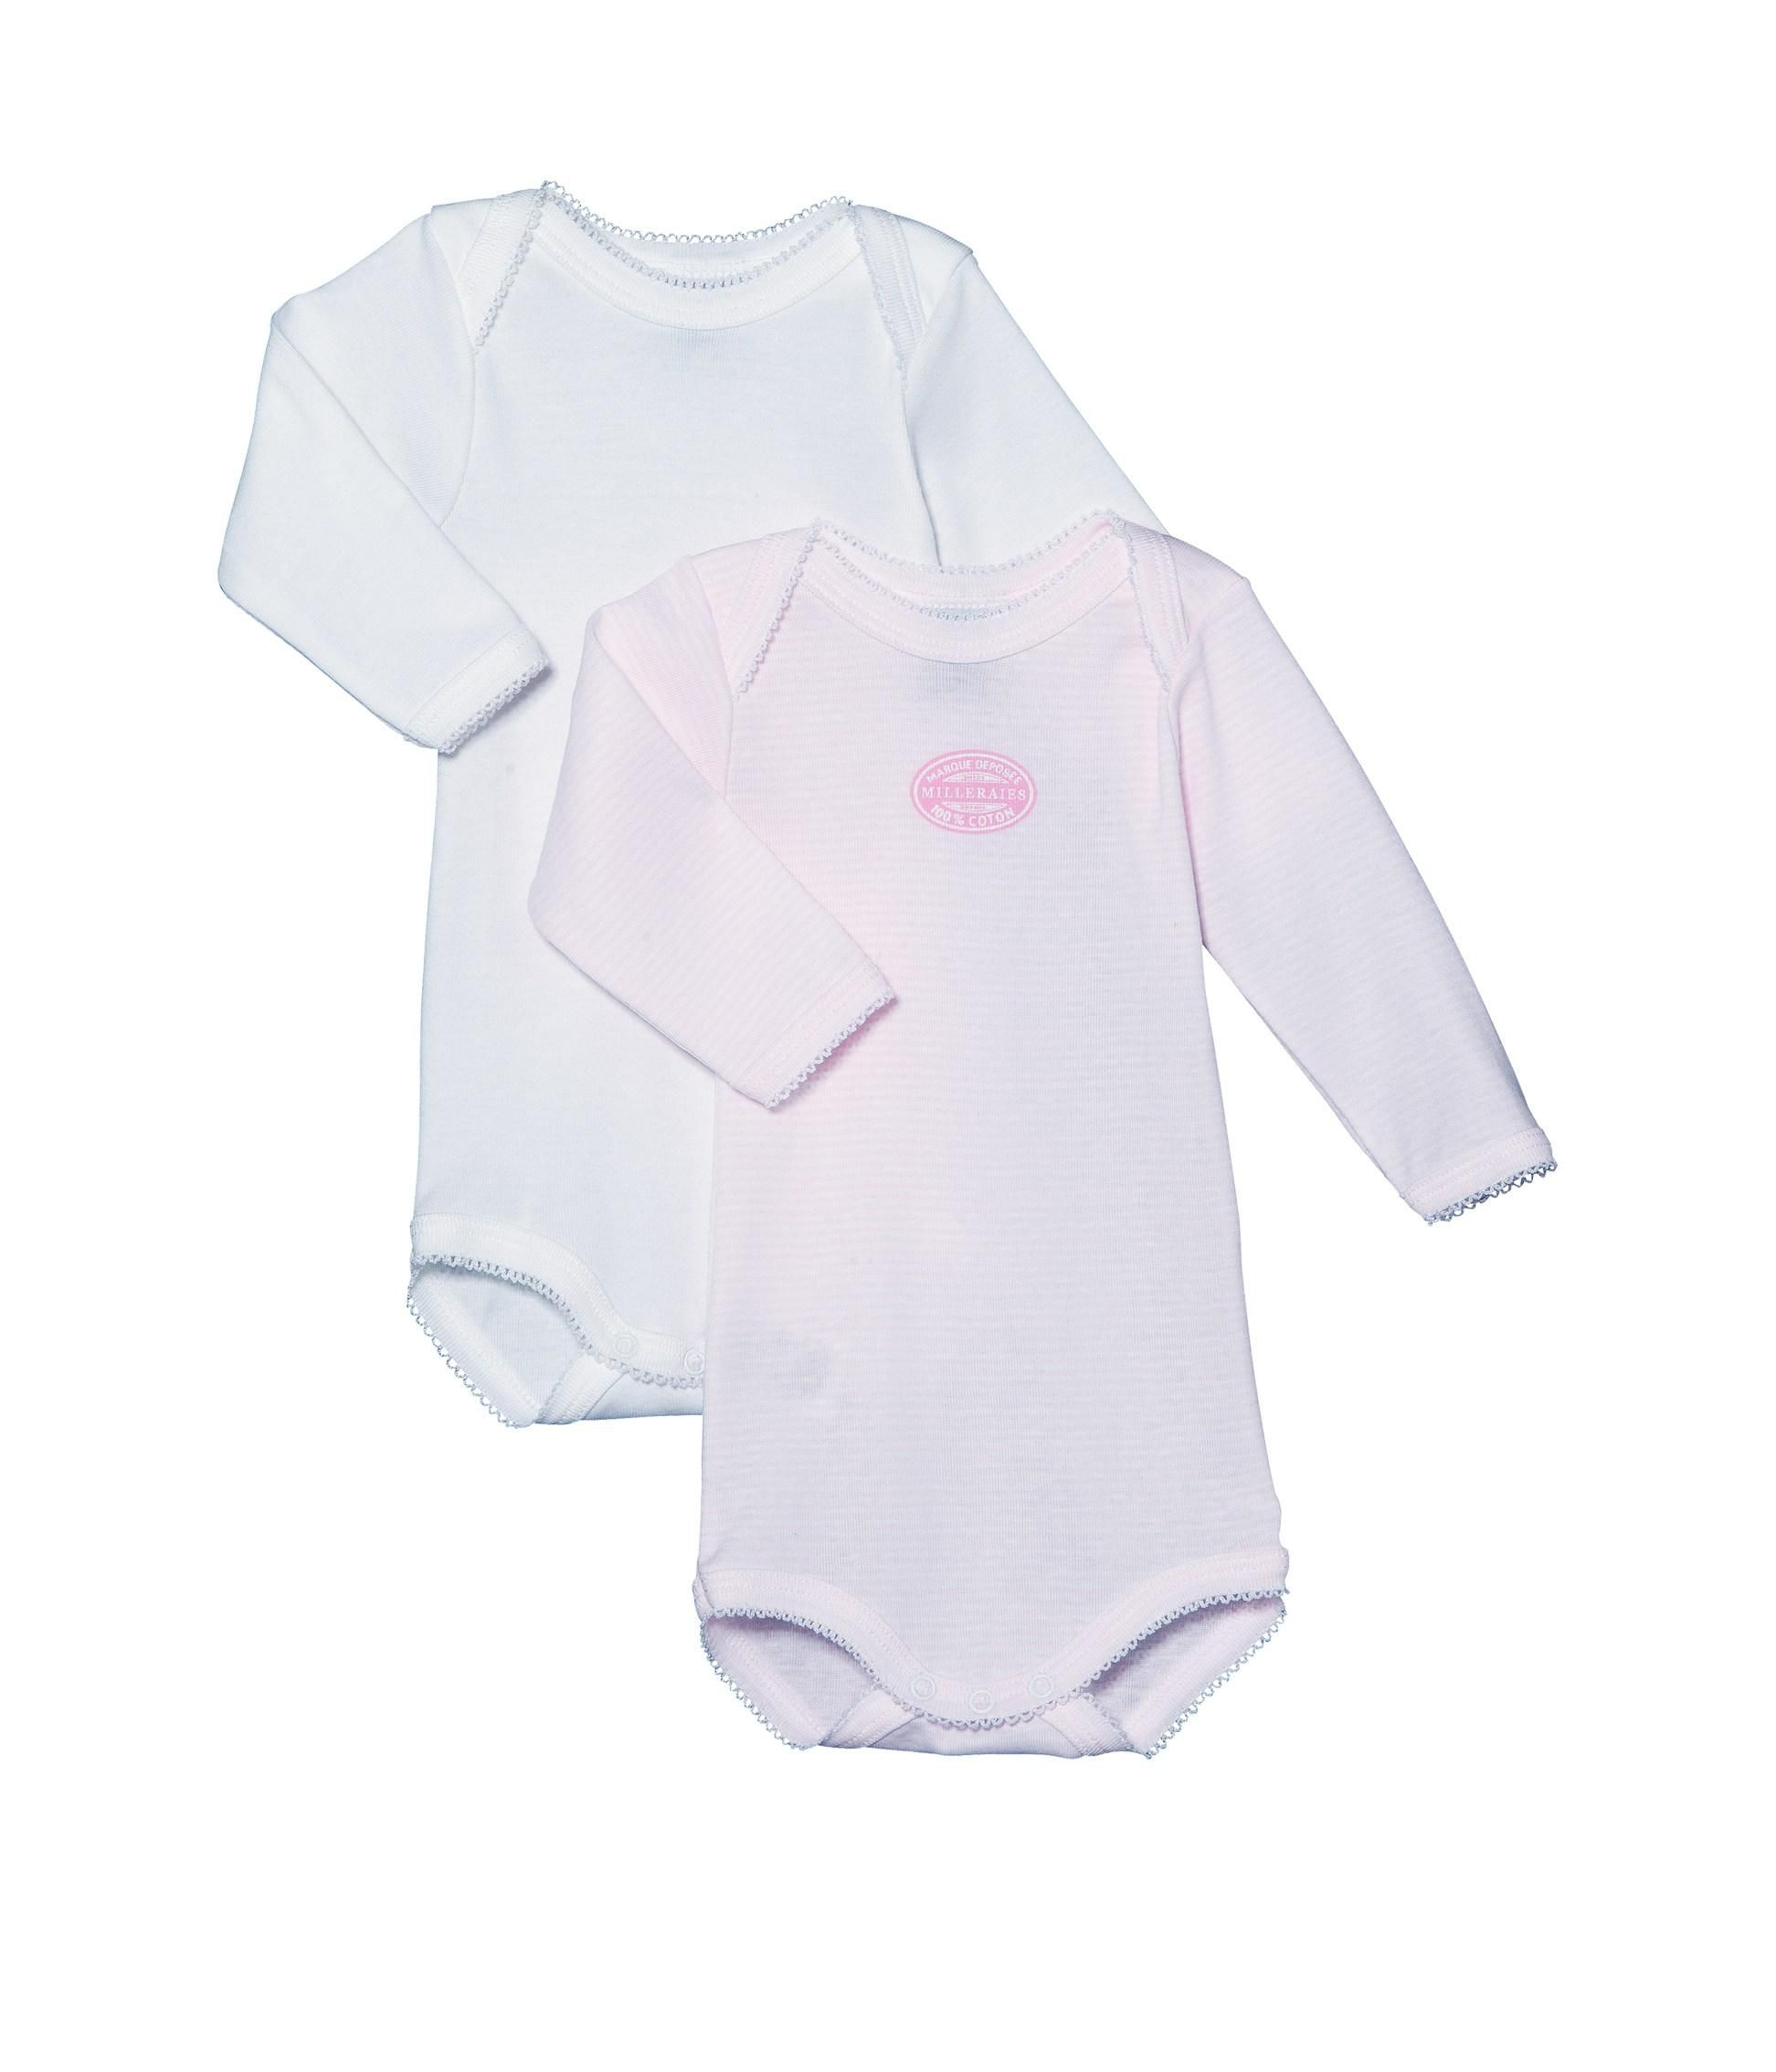 Pack of 2 baby envelope-neck bodysuits